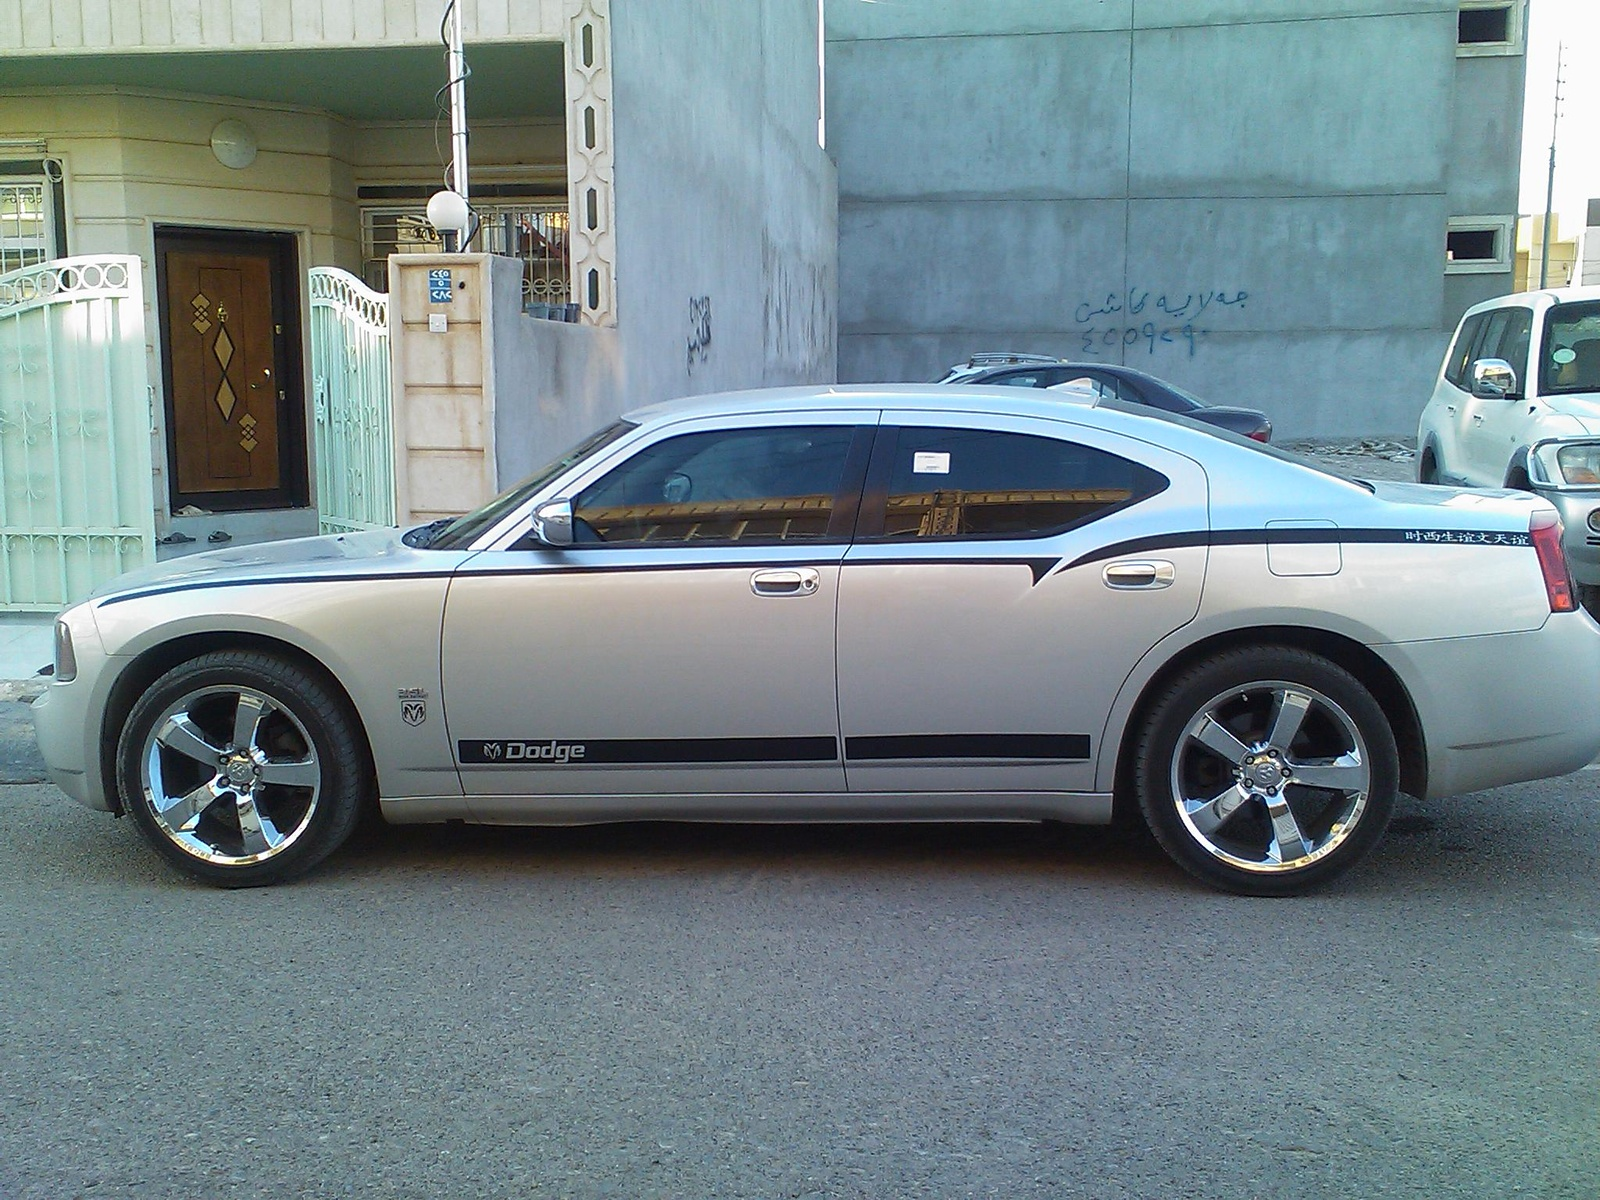 2007 Dodge Charger Image 15